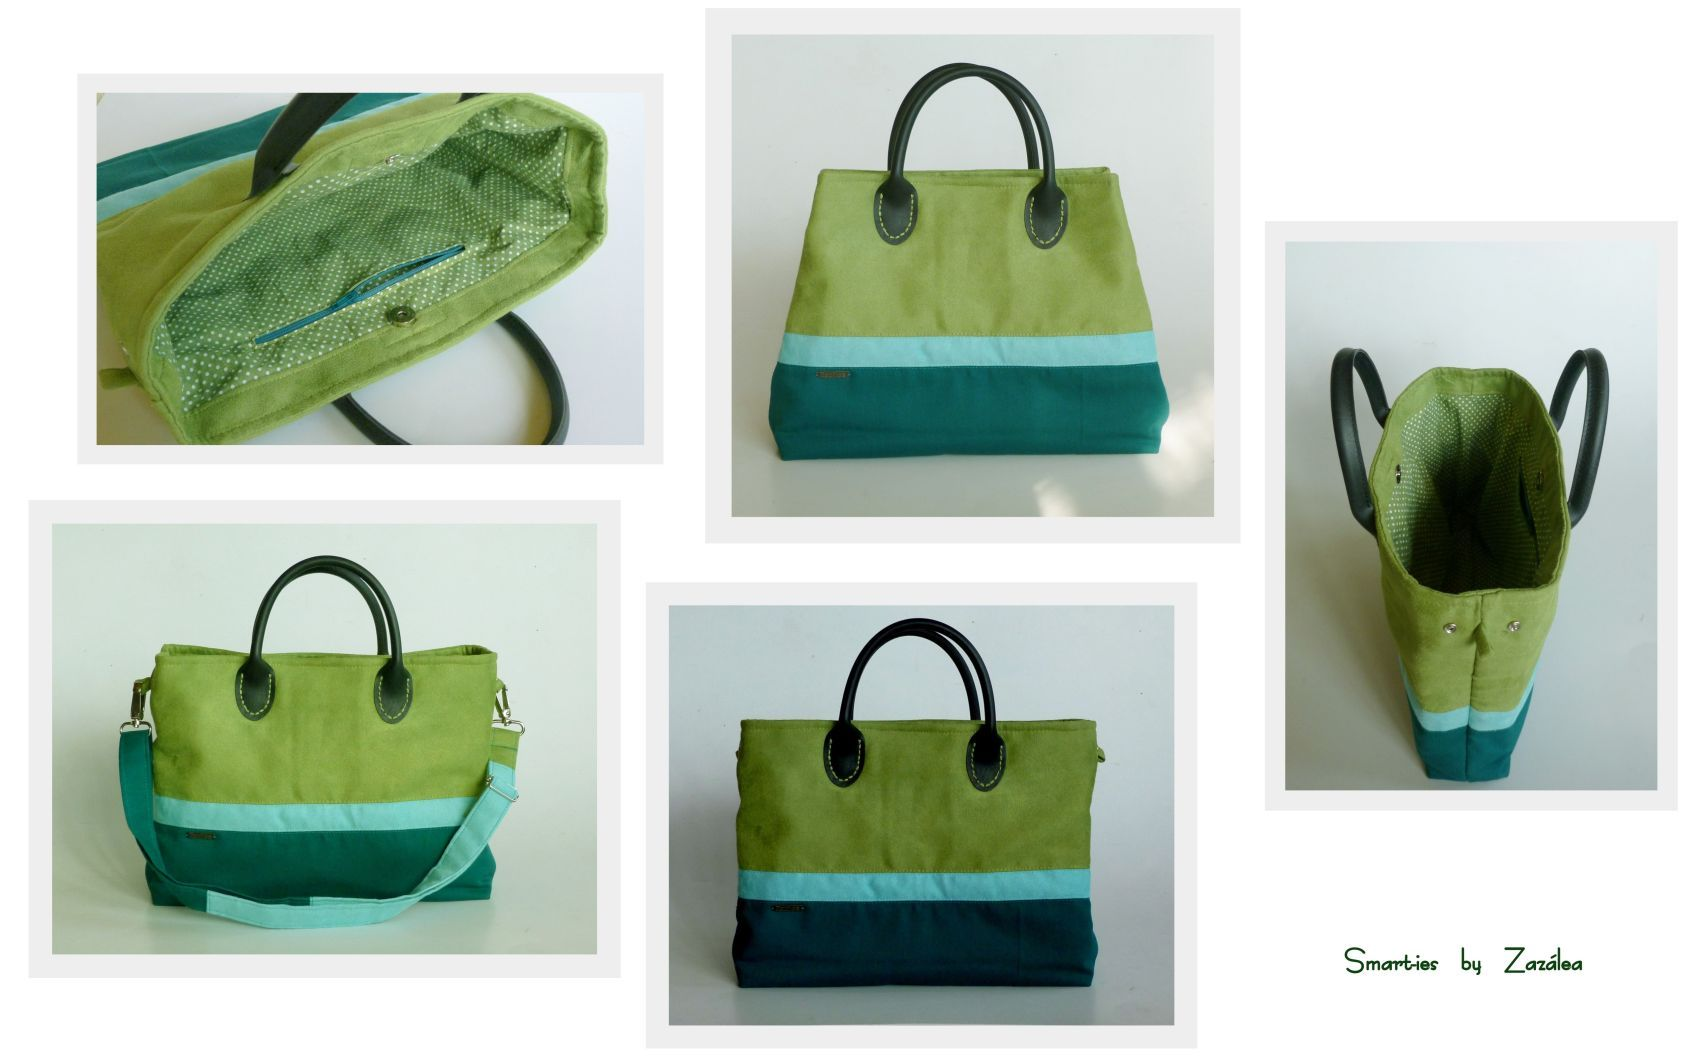 Smarties bag - in greens. And in love of course.